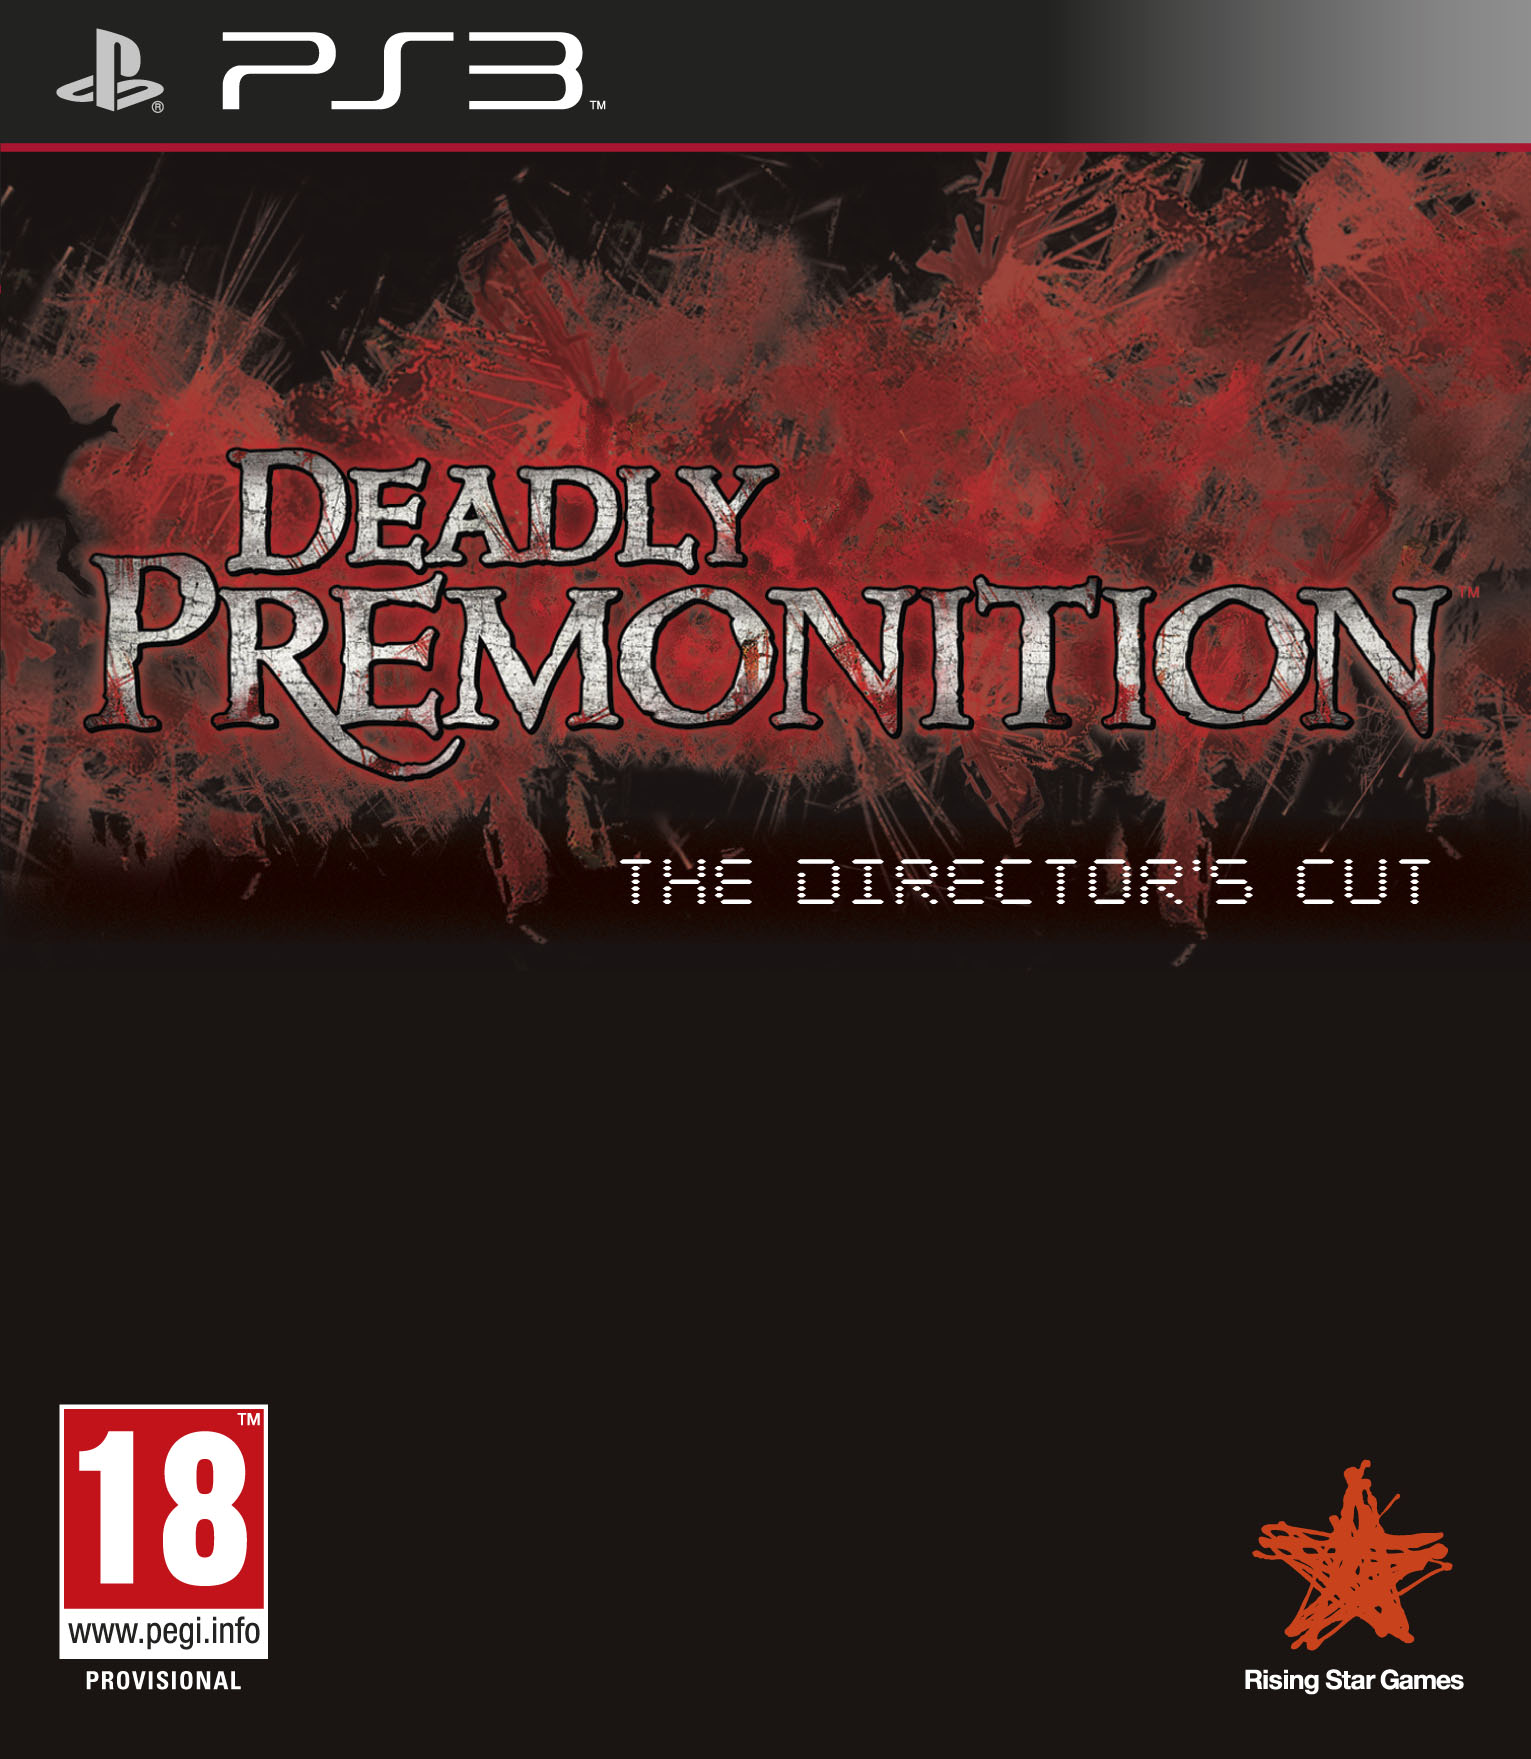 DeadlyPremonition-TheDirector-sCut PS3 Jaquette 001